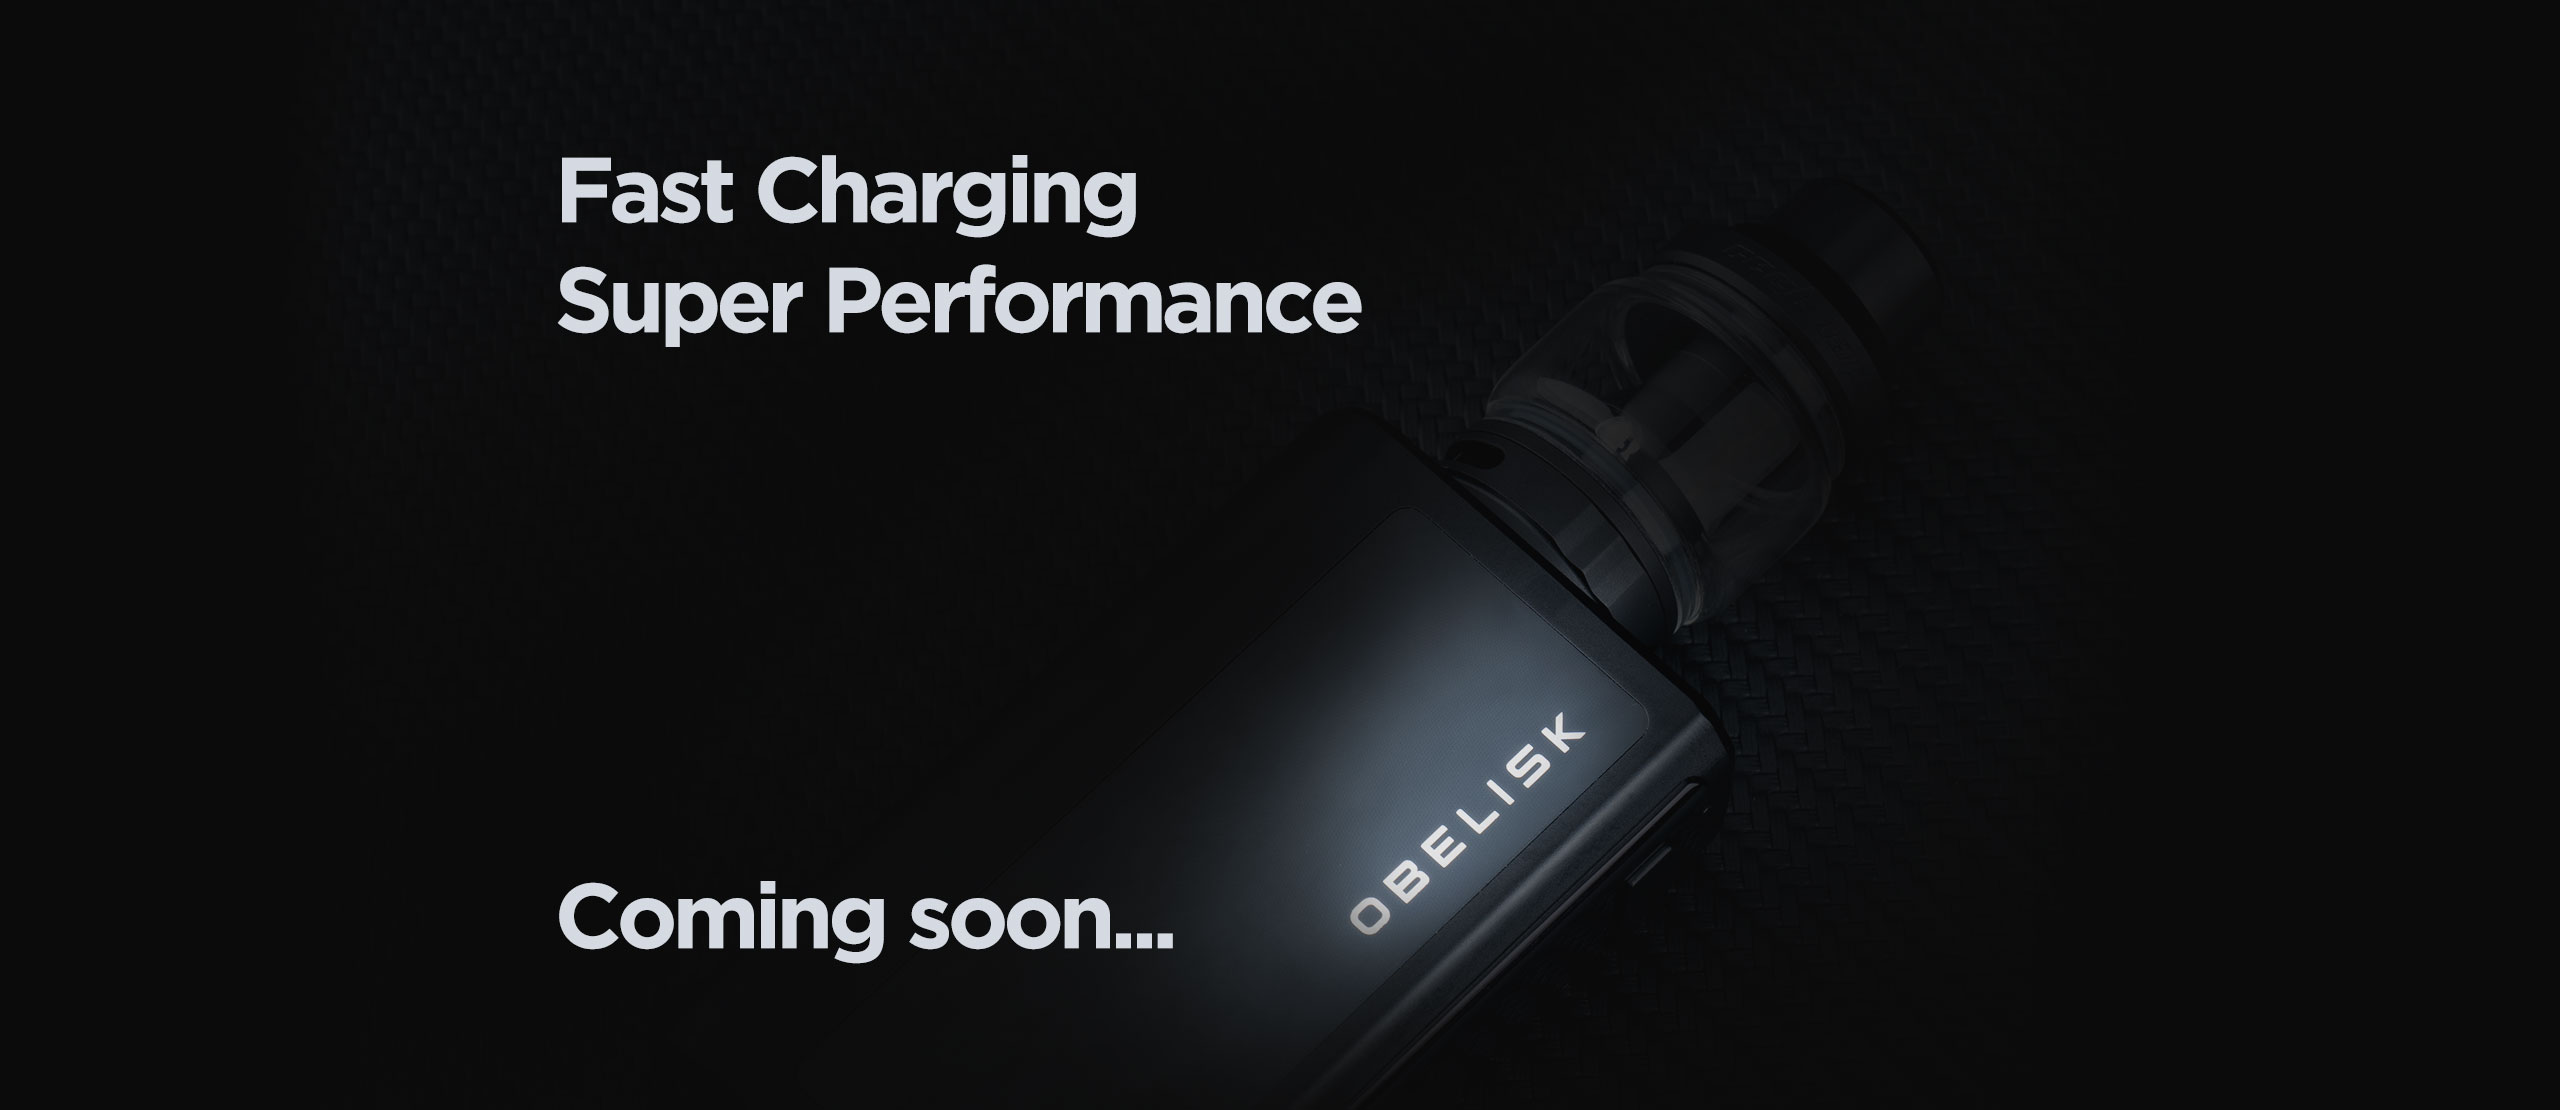 Fast Charging Super Performance